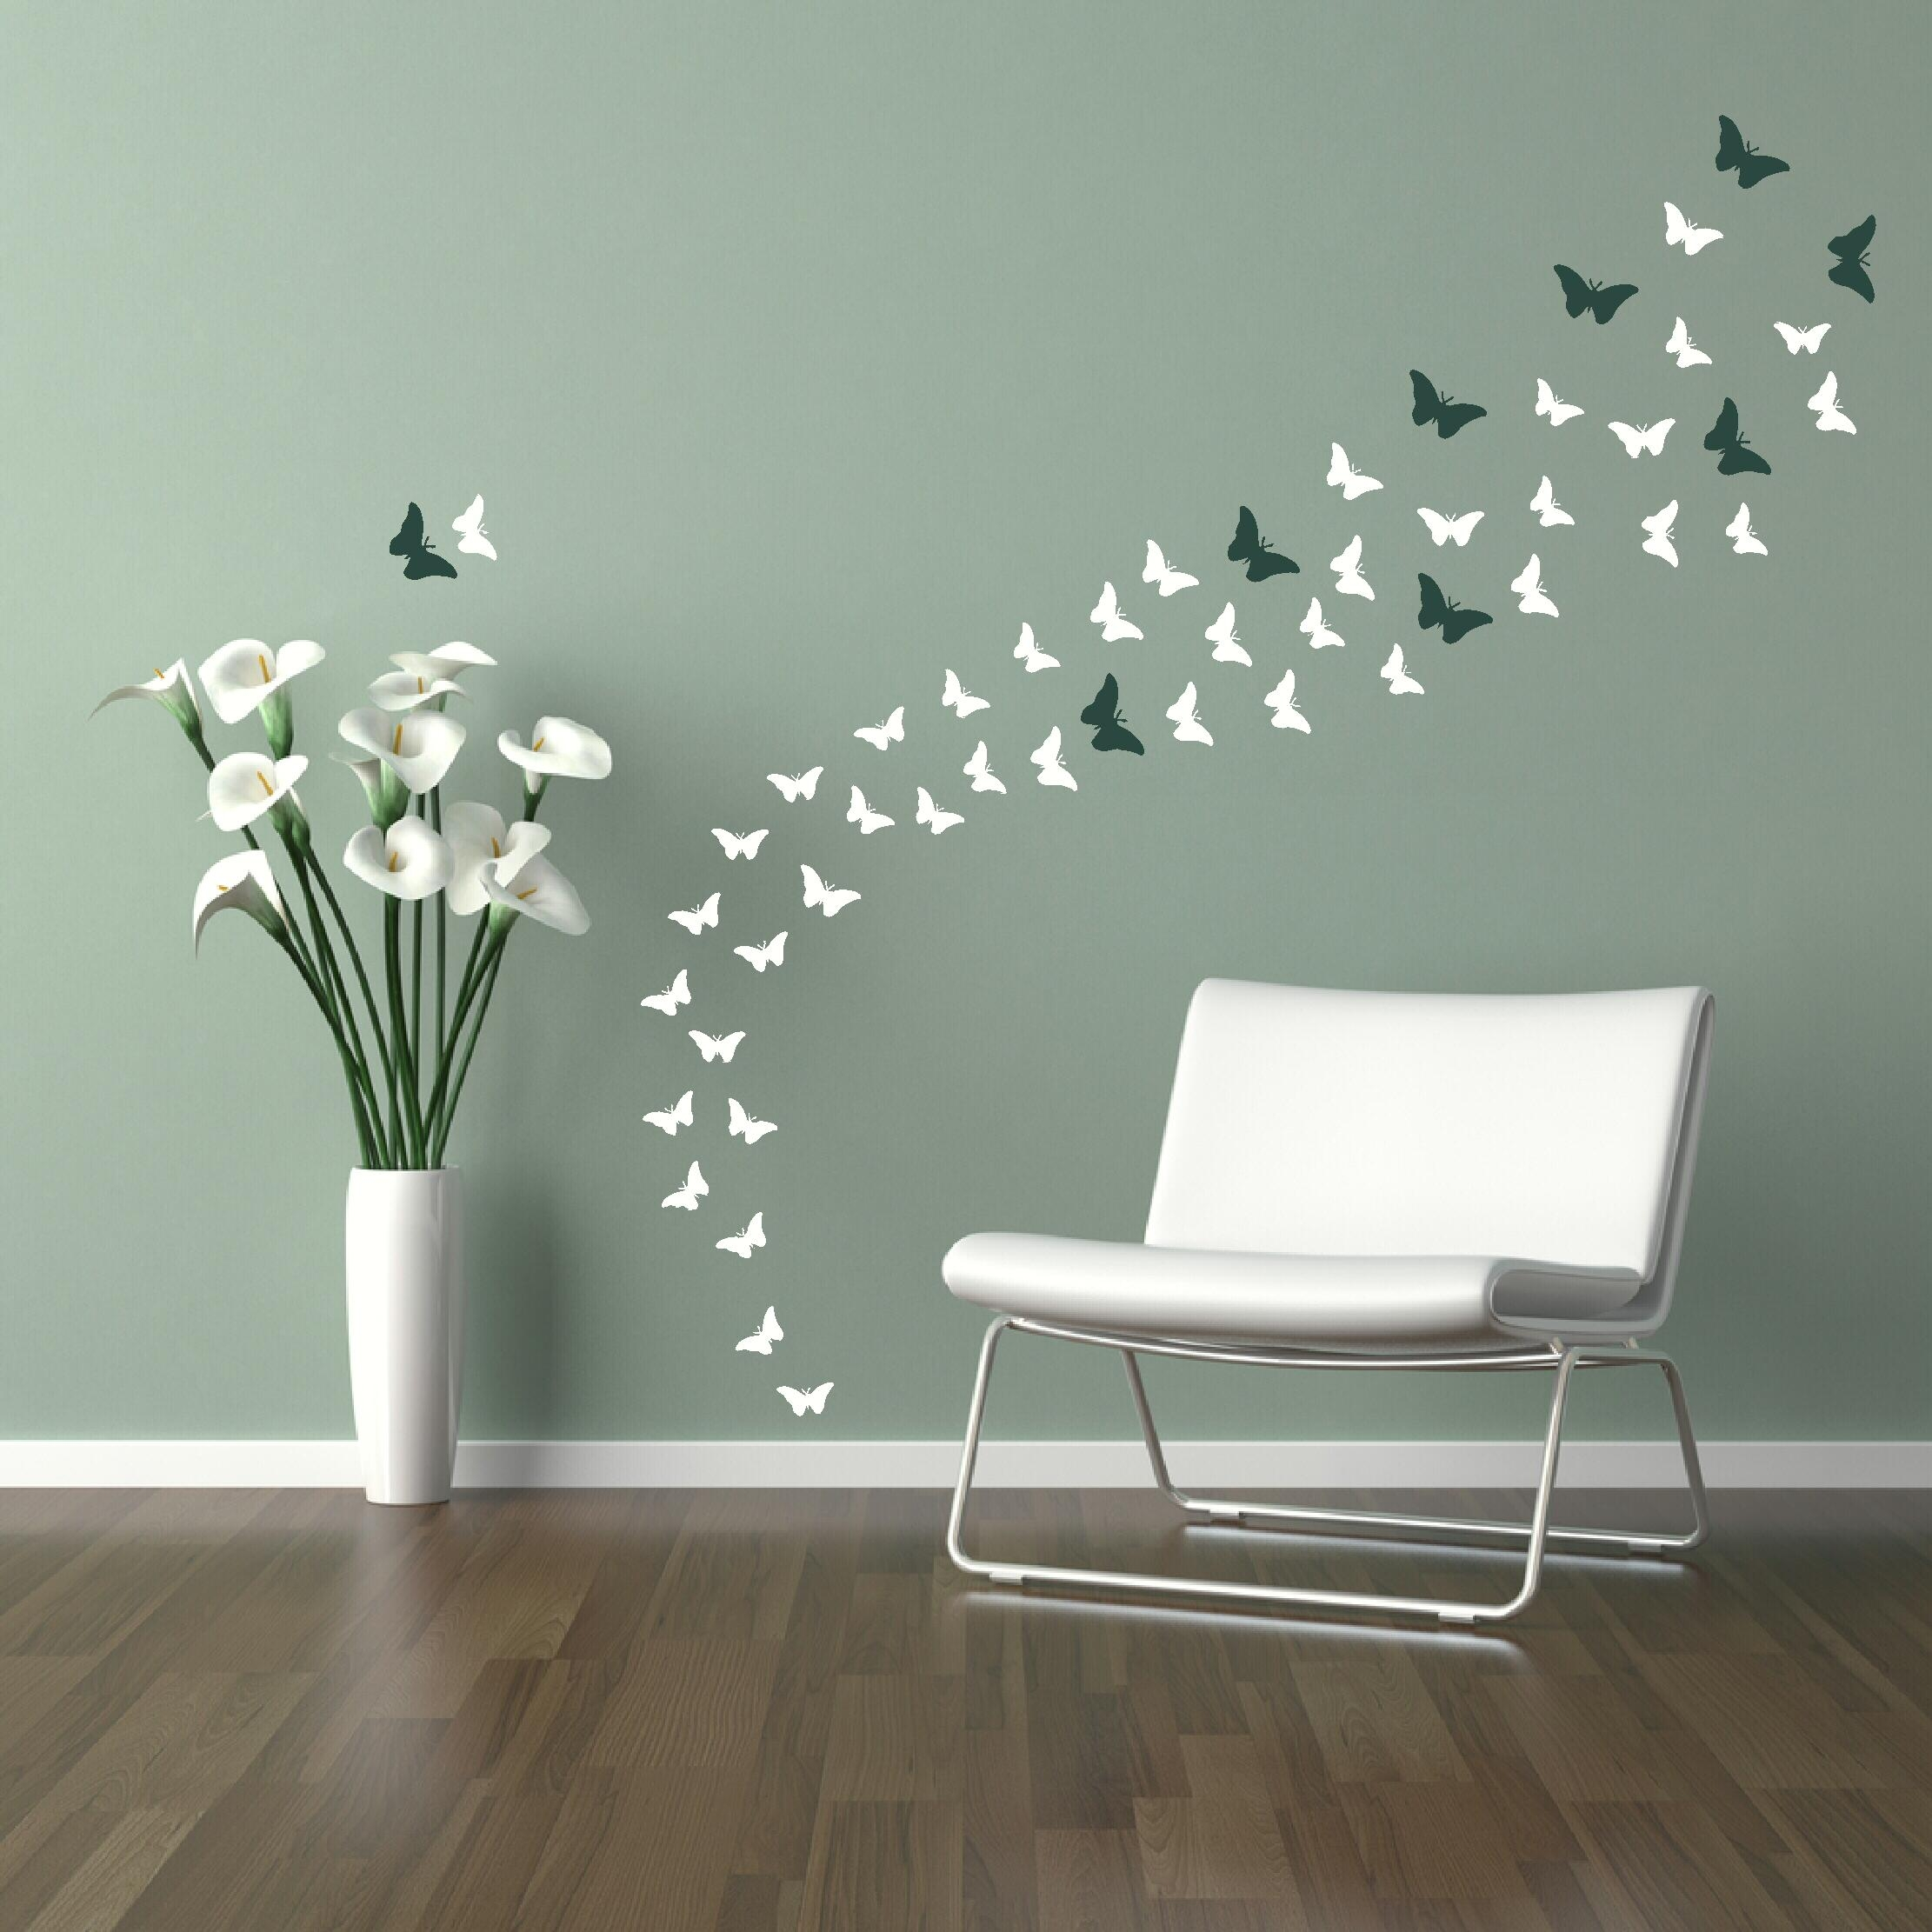 Kids Room: Wall Decal Ideas For Wall Decorations Stickers Tree For Butterflies Wall Art Stickers (Image 12 of 20)